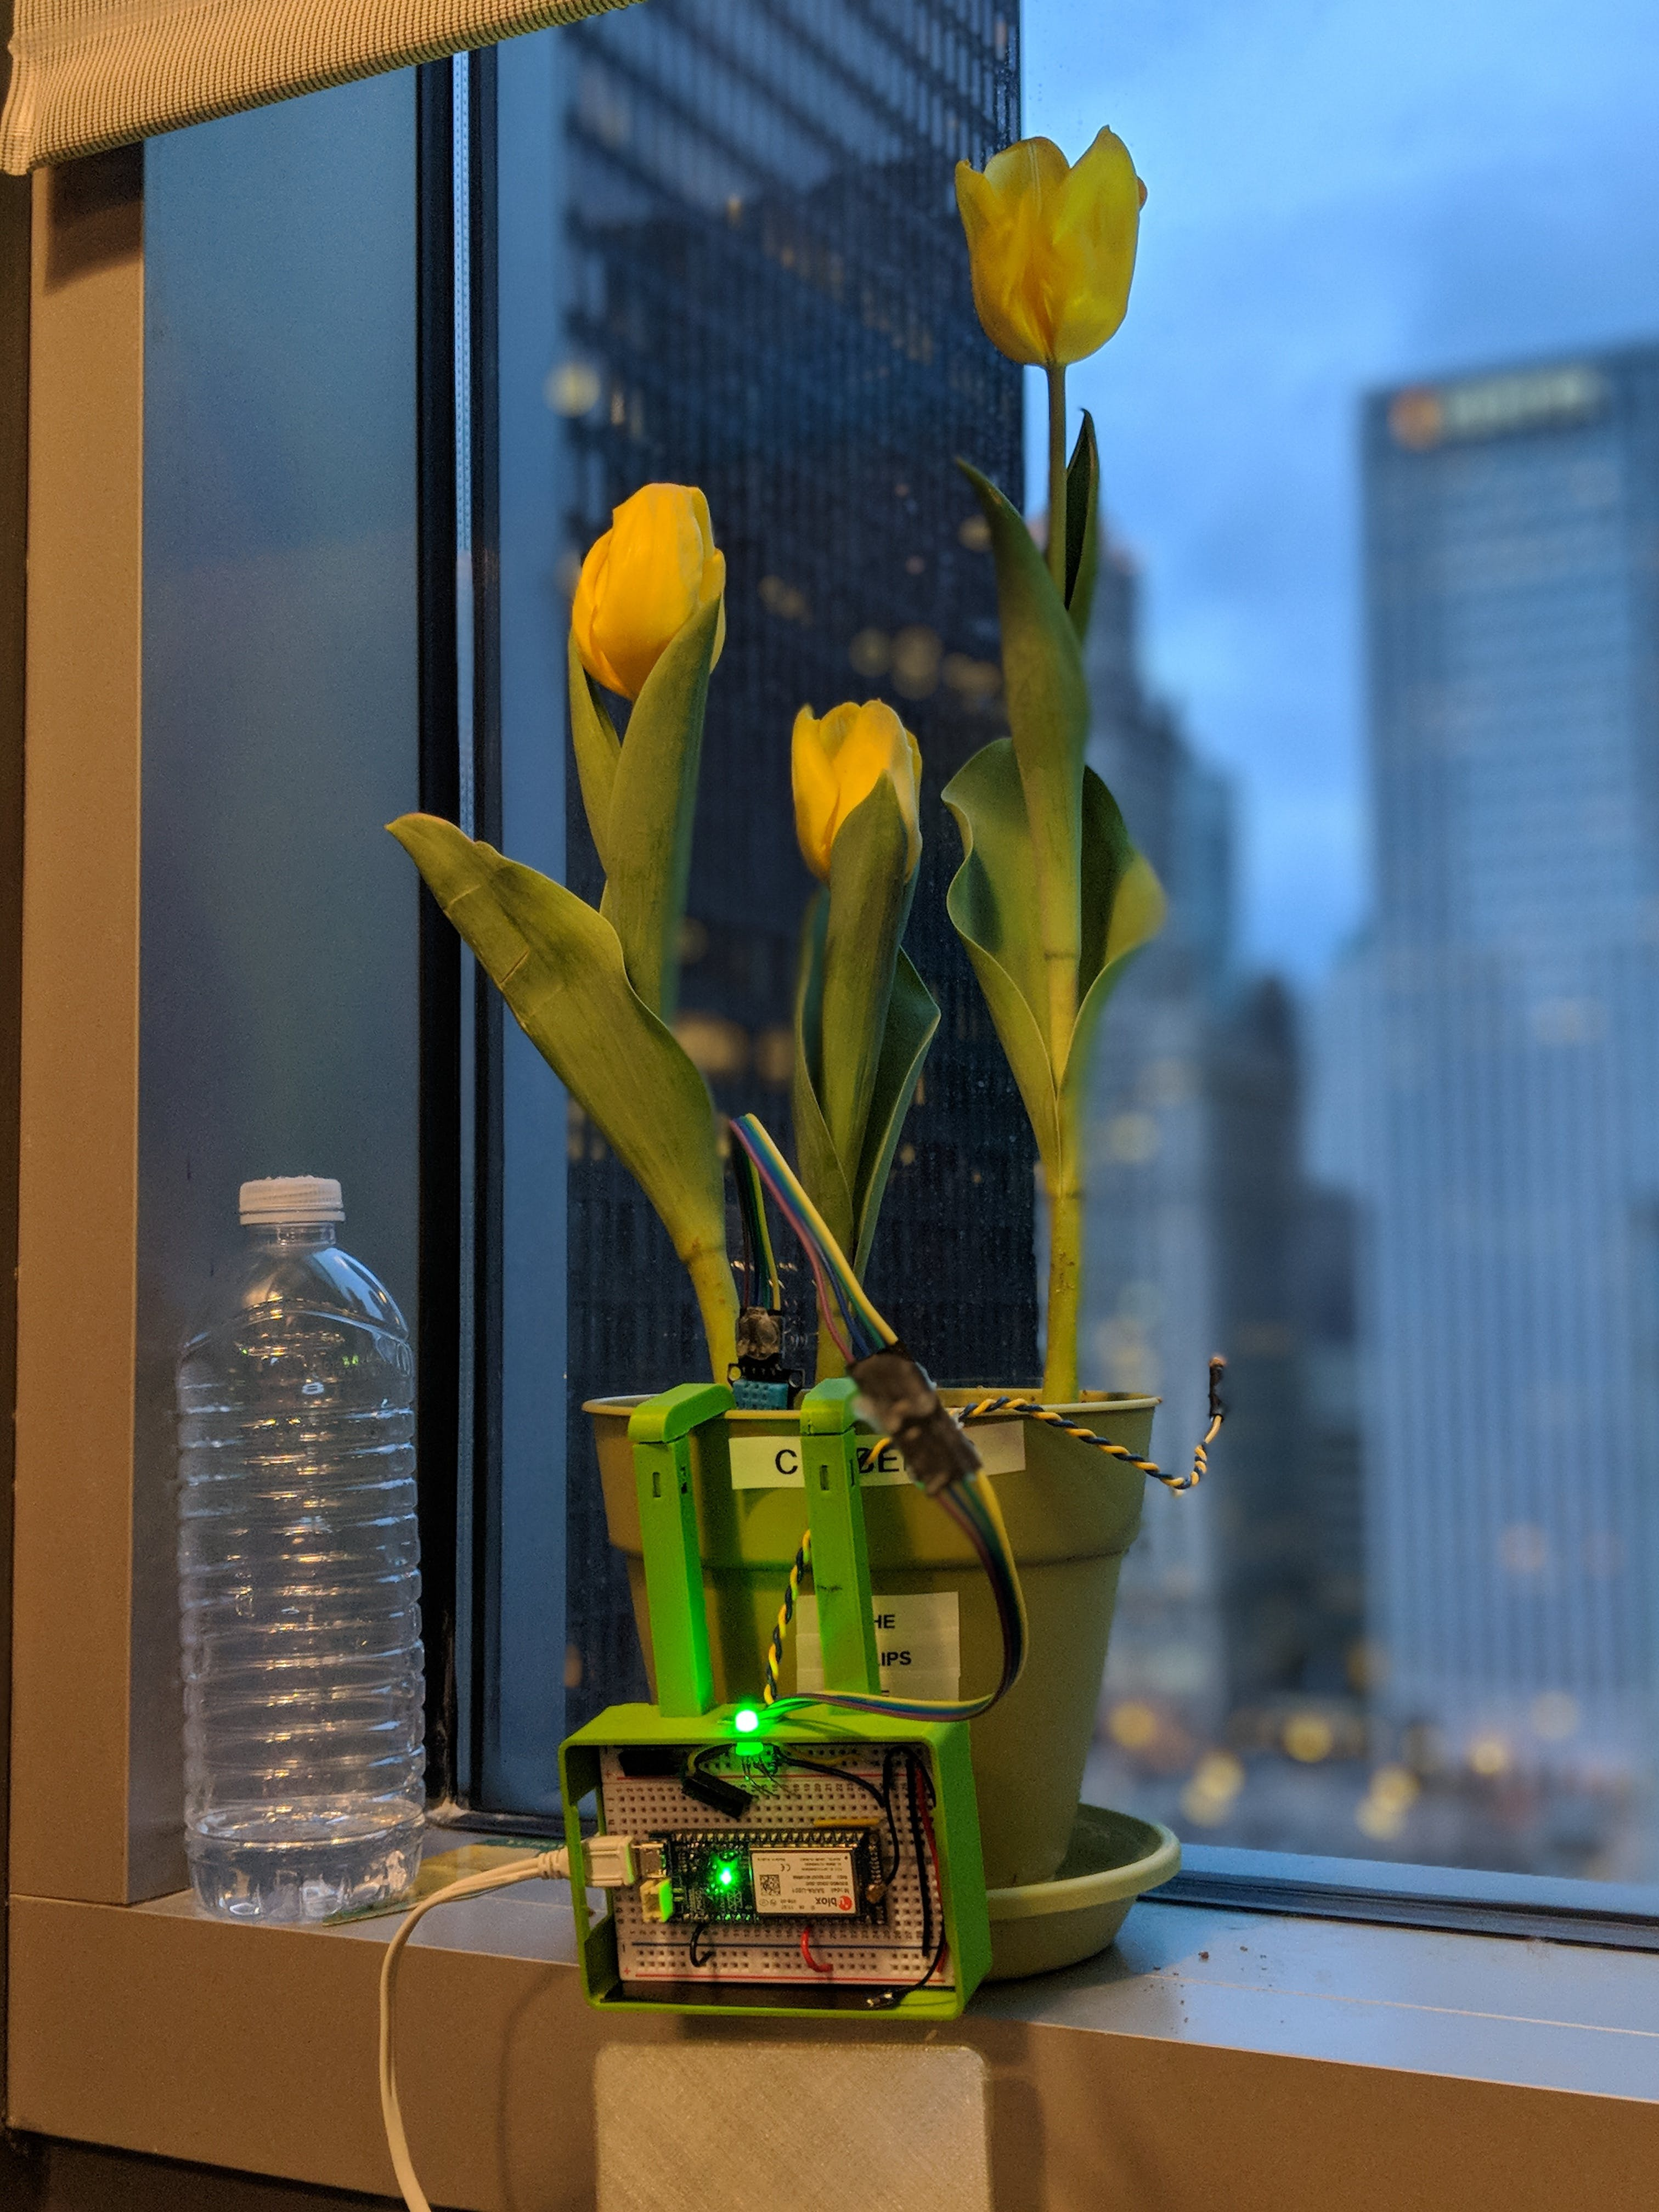 Our tulips also wanted a Pachamama sensor